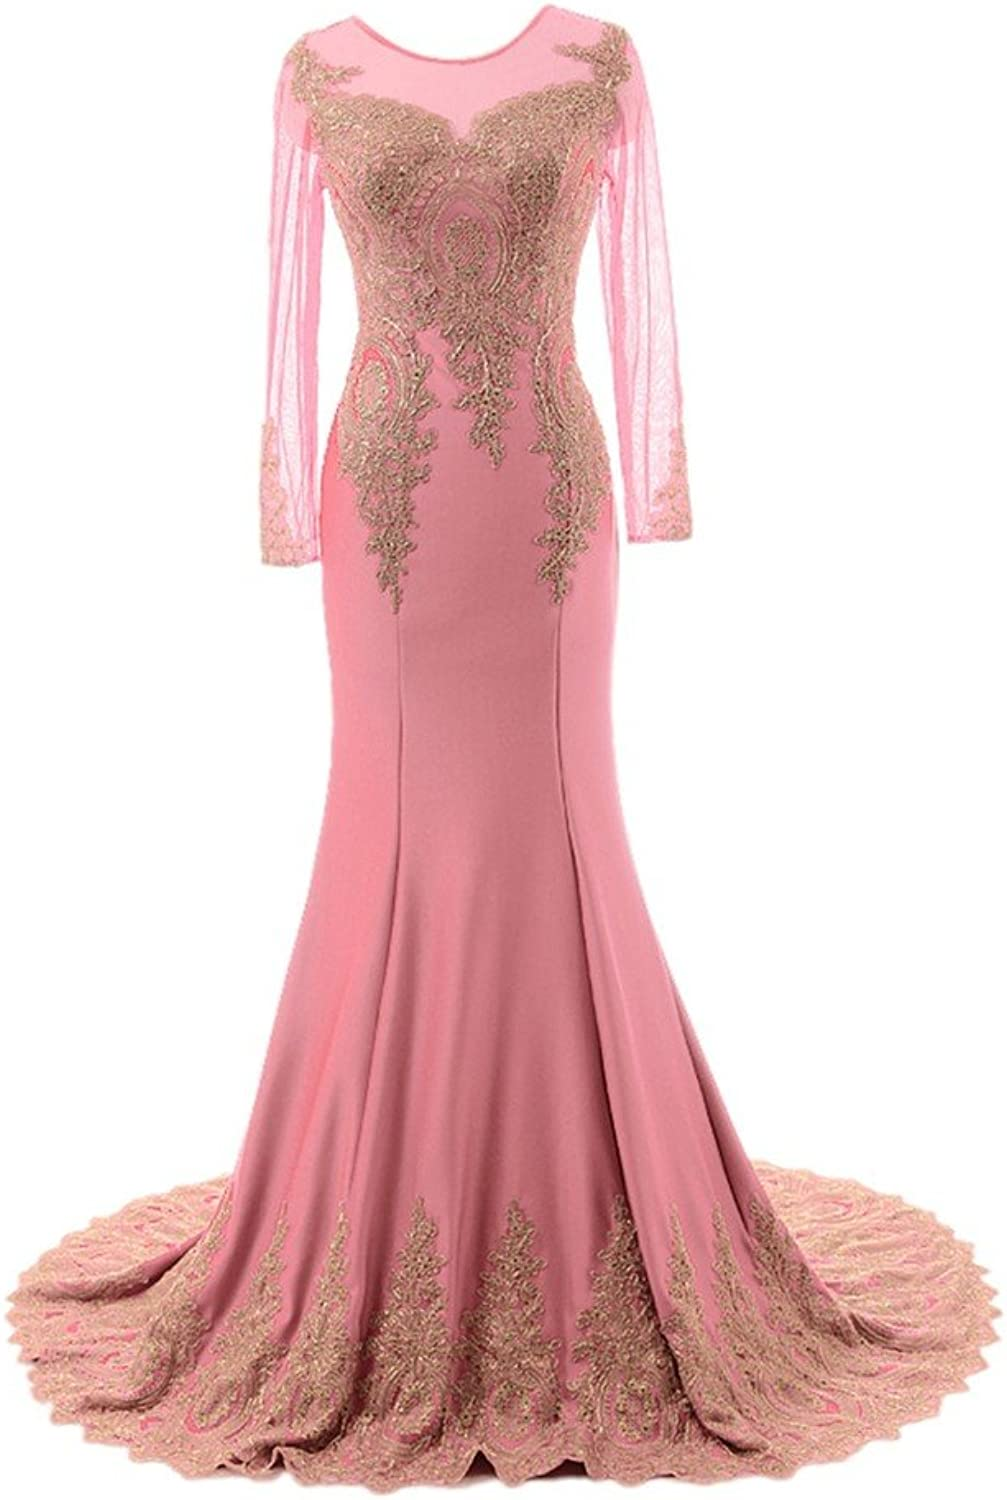 Epinkbridal Women's Long Sleeves Formal Evening Prom Dresses with Beaded